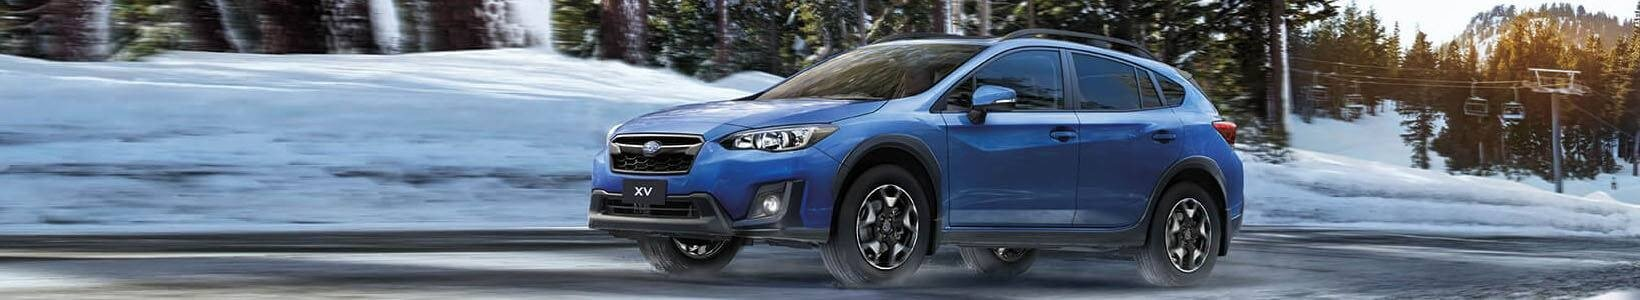 Subaru XV 2017 driving across road